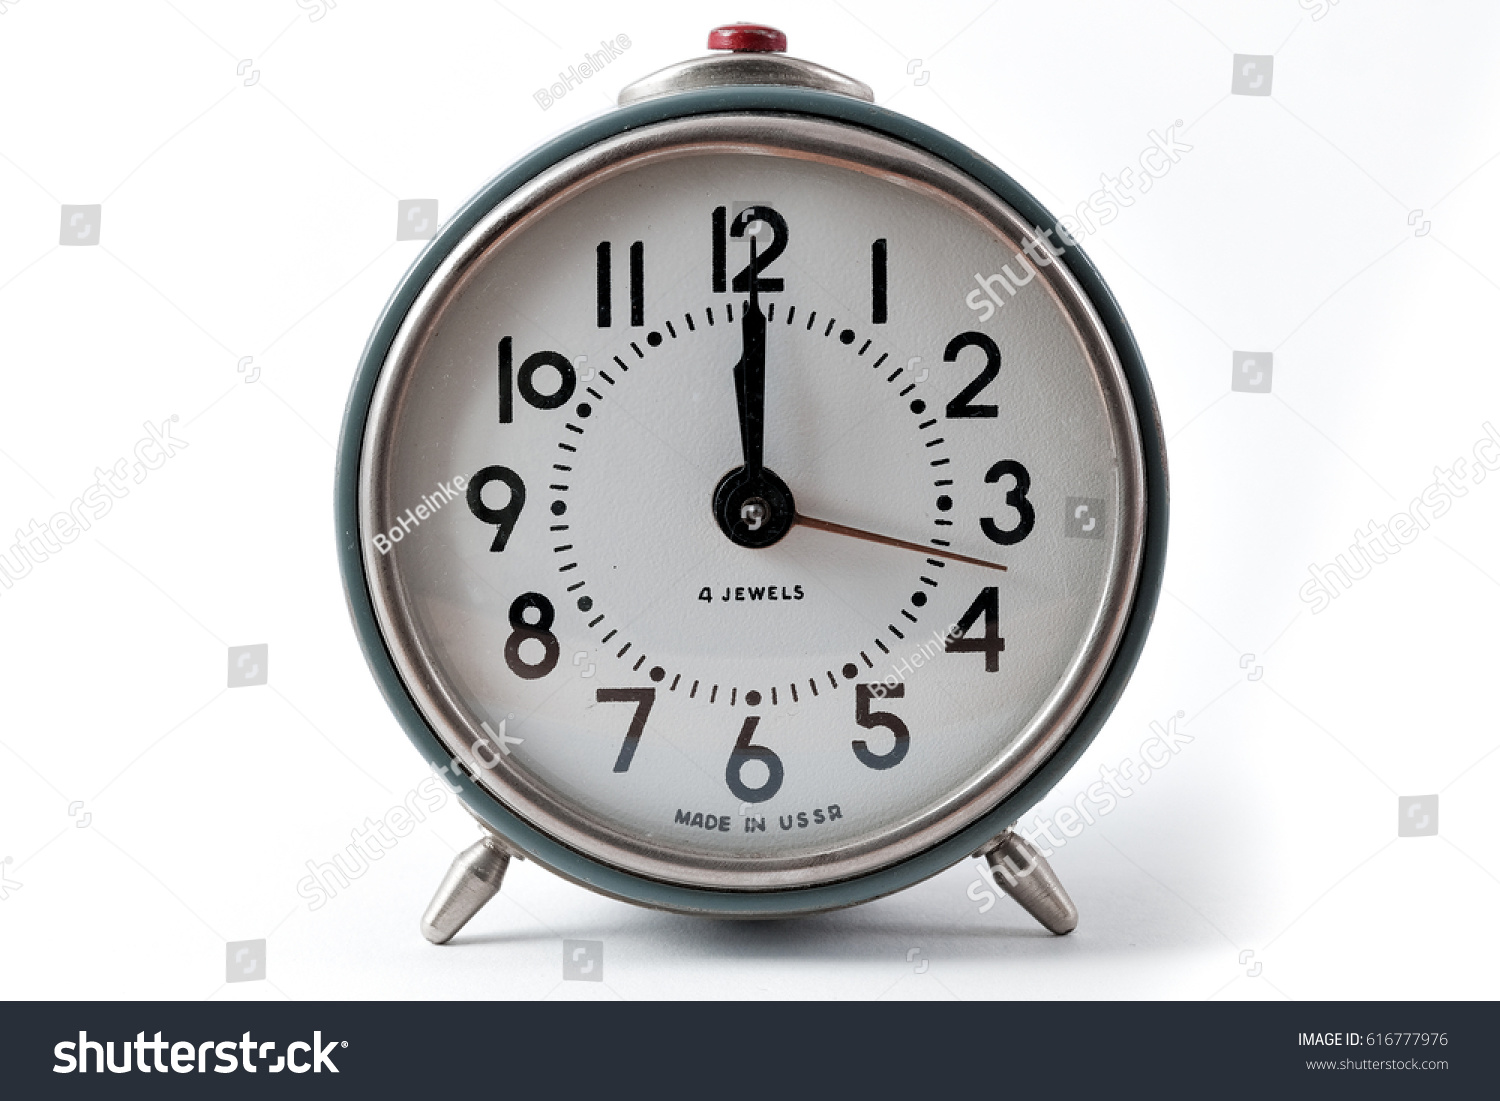 Vintage russian alarm clock front view stock photo 616777976 vintage russian alarm clock front view amipublicfo Images